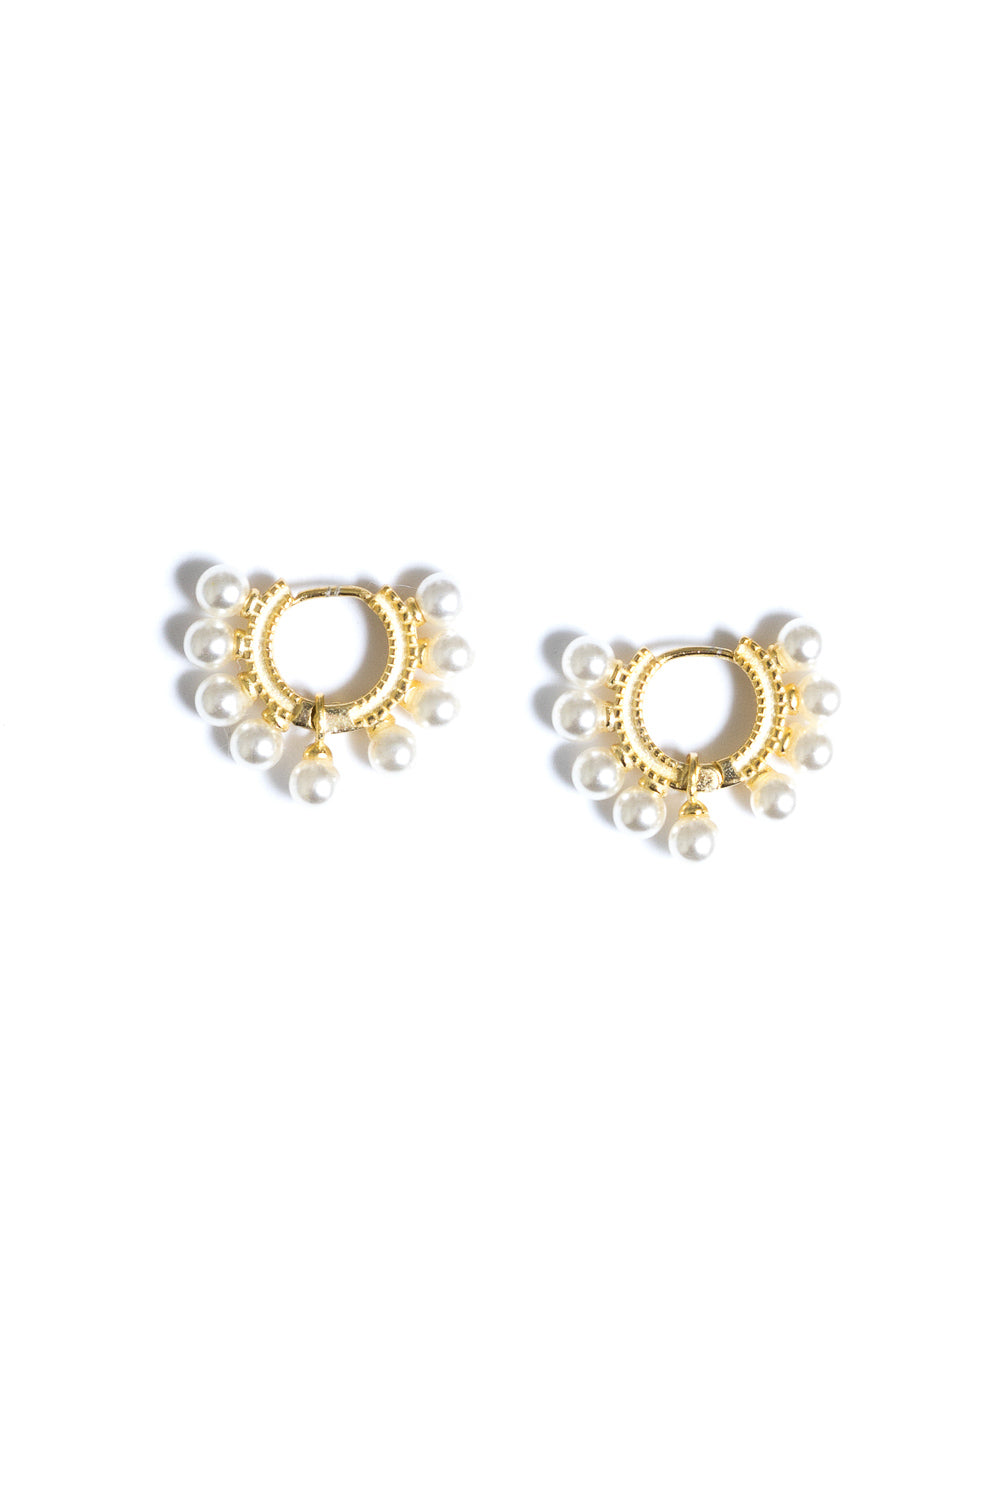 pearl mini gold huggie hoop earrings by janna conner